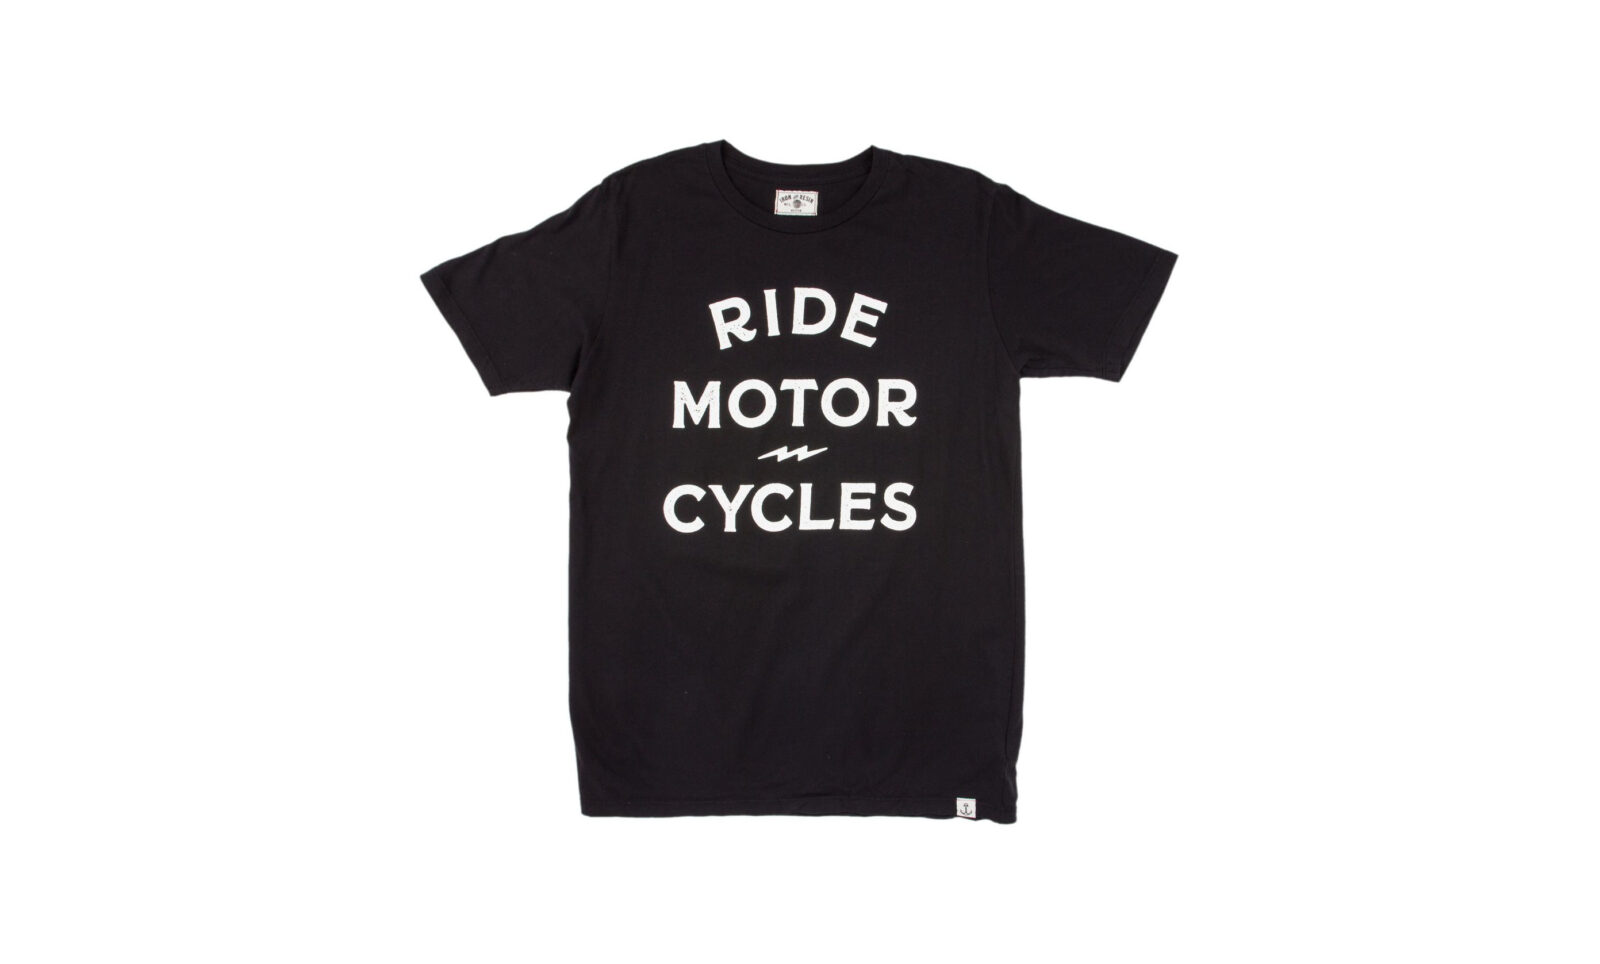 Ride Motor Cycles Tee 1600x964 - Ride Motor Cycles Tee